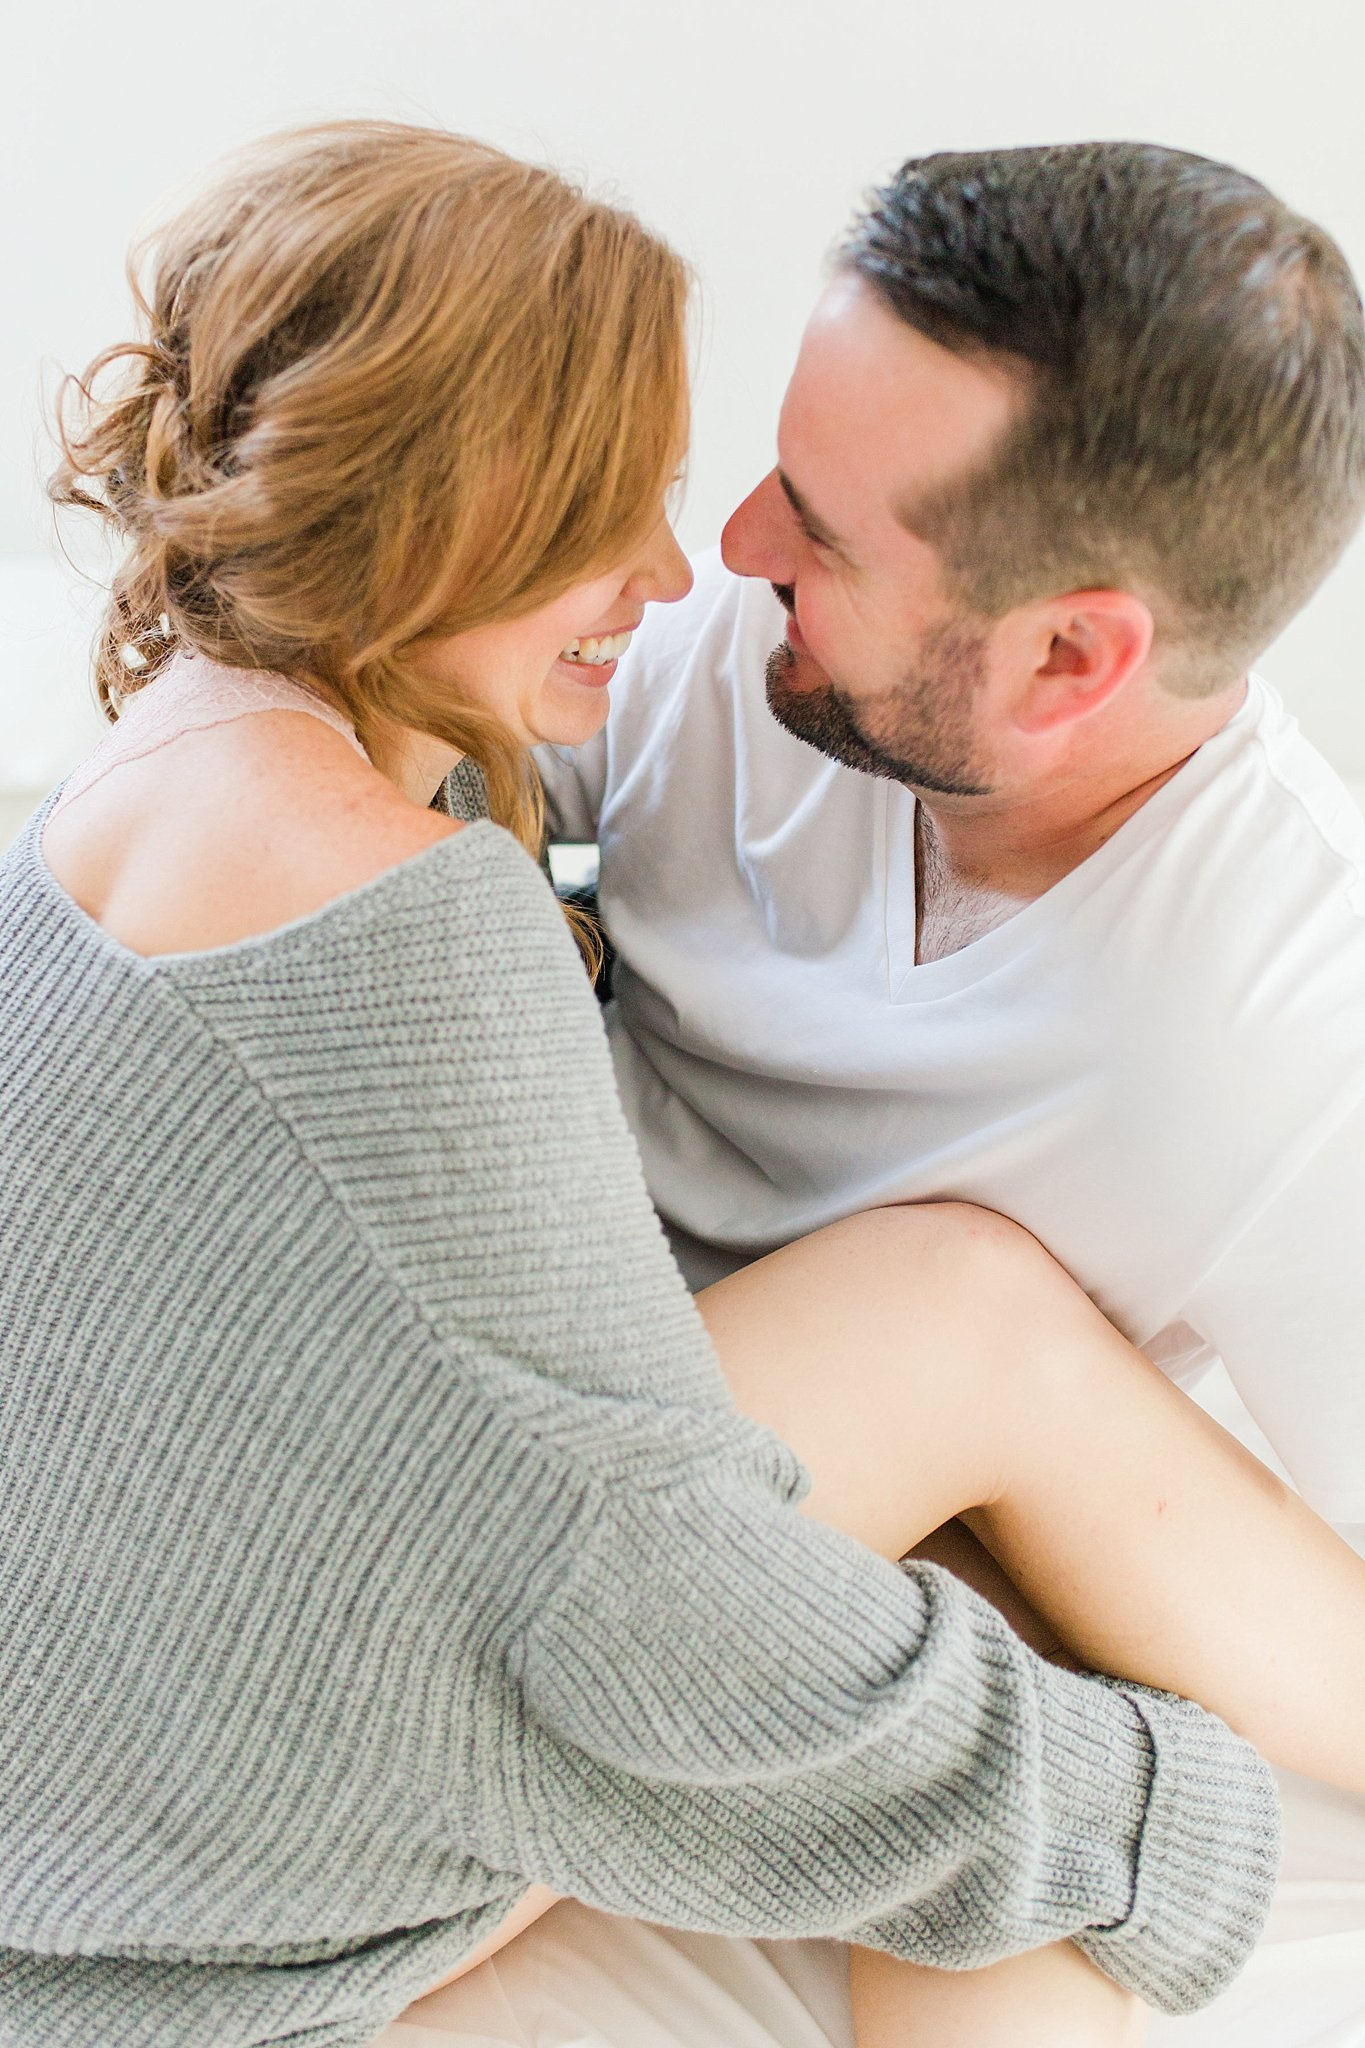 2017 almost destroyed my marriage, read more on cottagehill.co 8.jpg